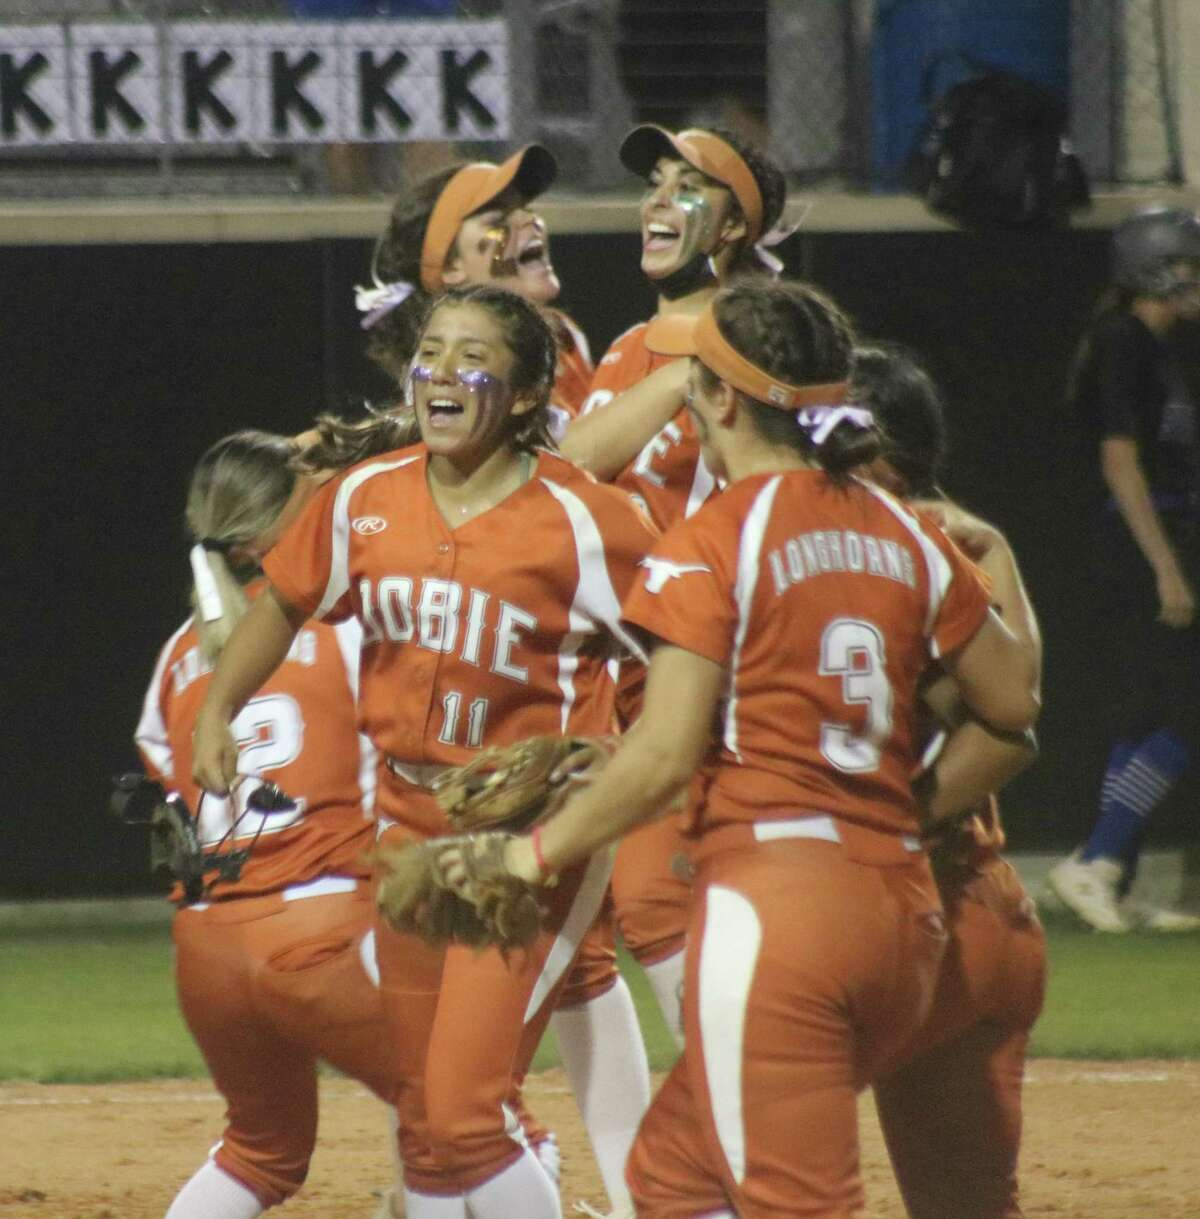 Dobie pitcher Marisa Perla (11) and her teammates rejoice over the triple play they just turned in Thursday night, escaping a sixth-inning jam in the process.